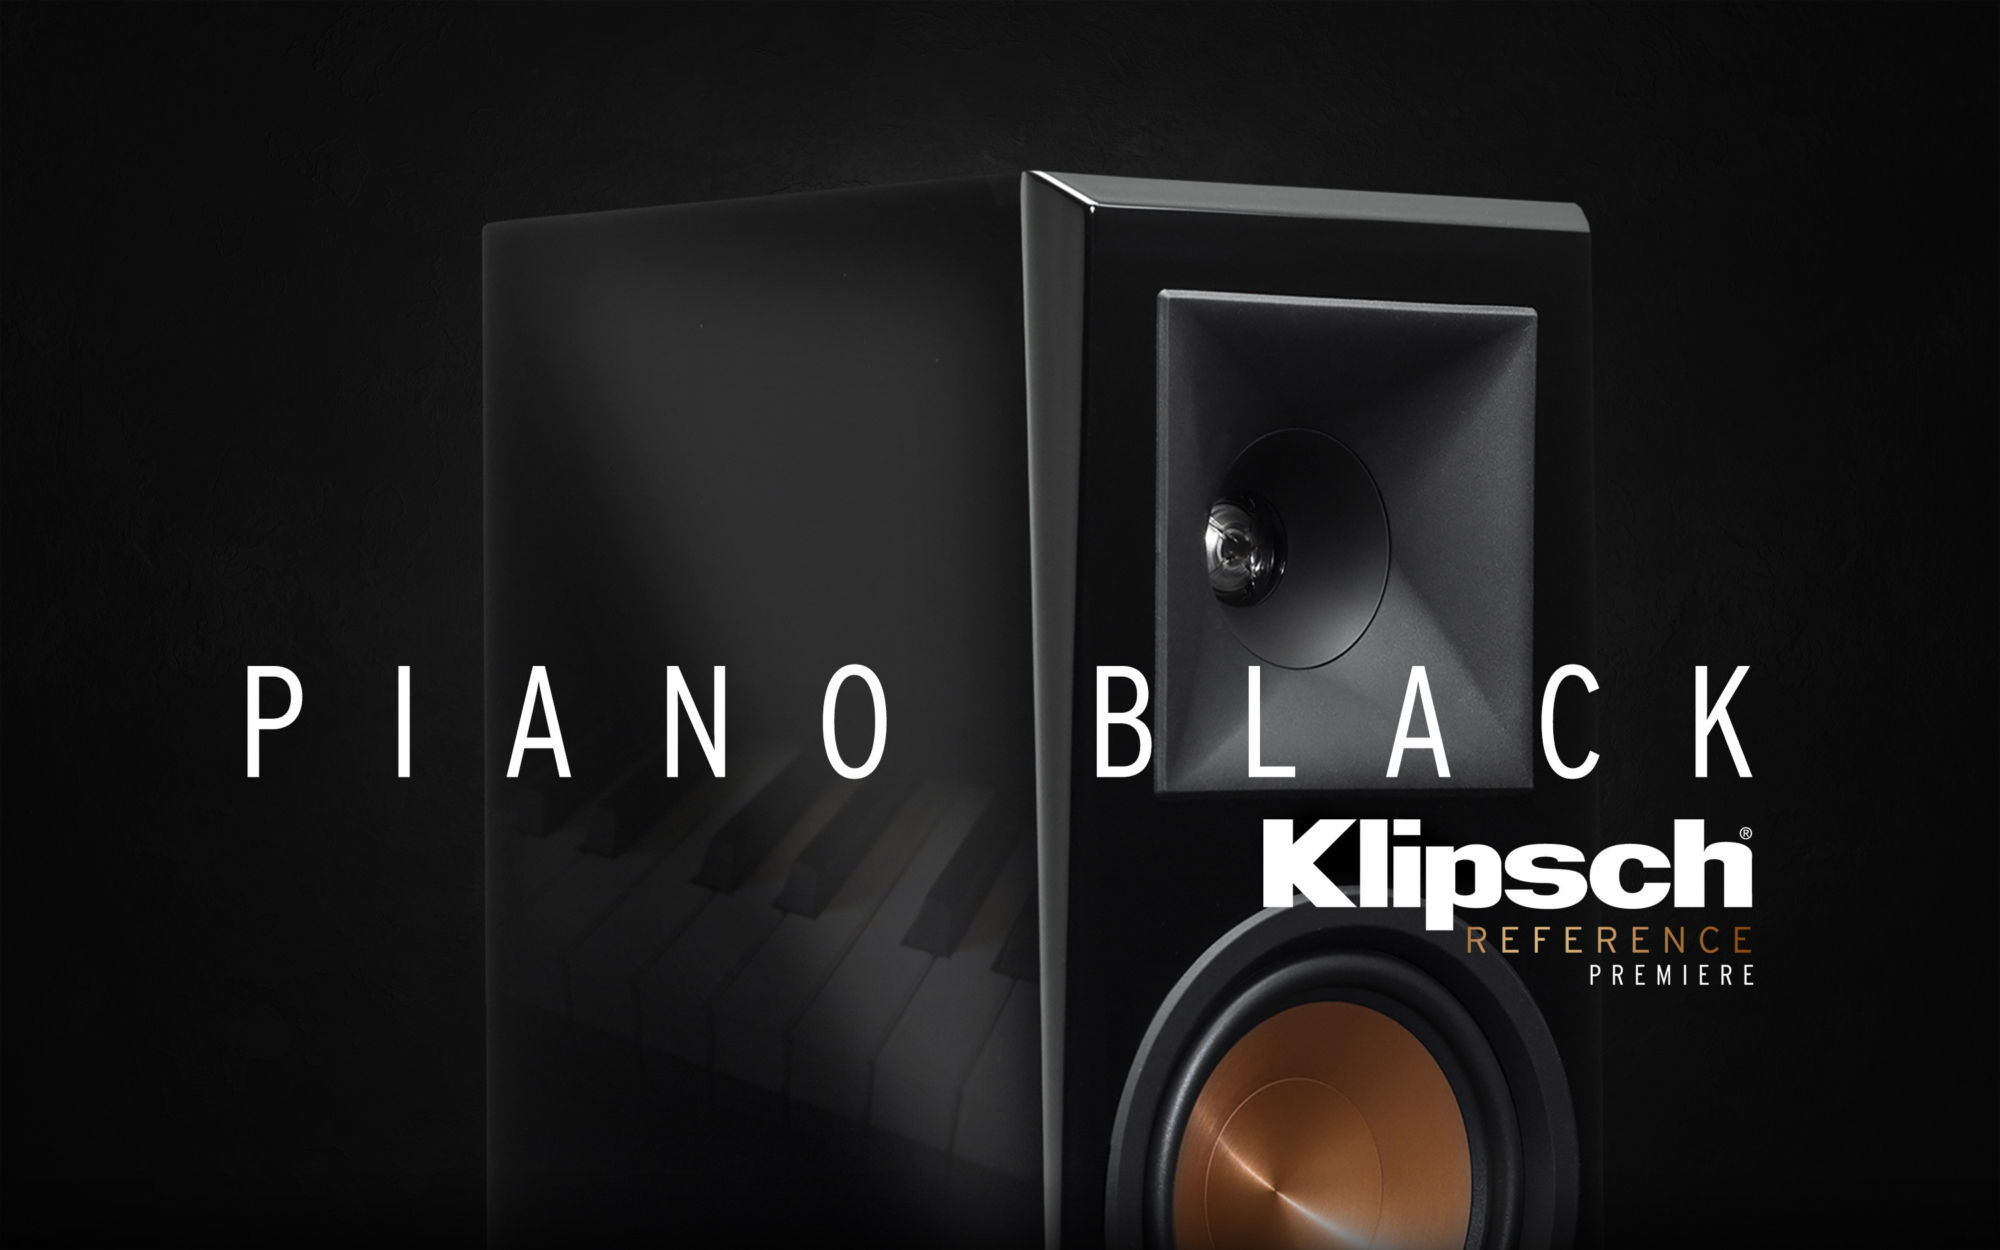 Reference Premiere Piano Black Lifestyle 4 C Final